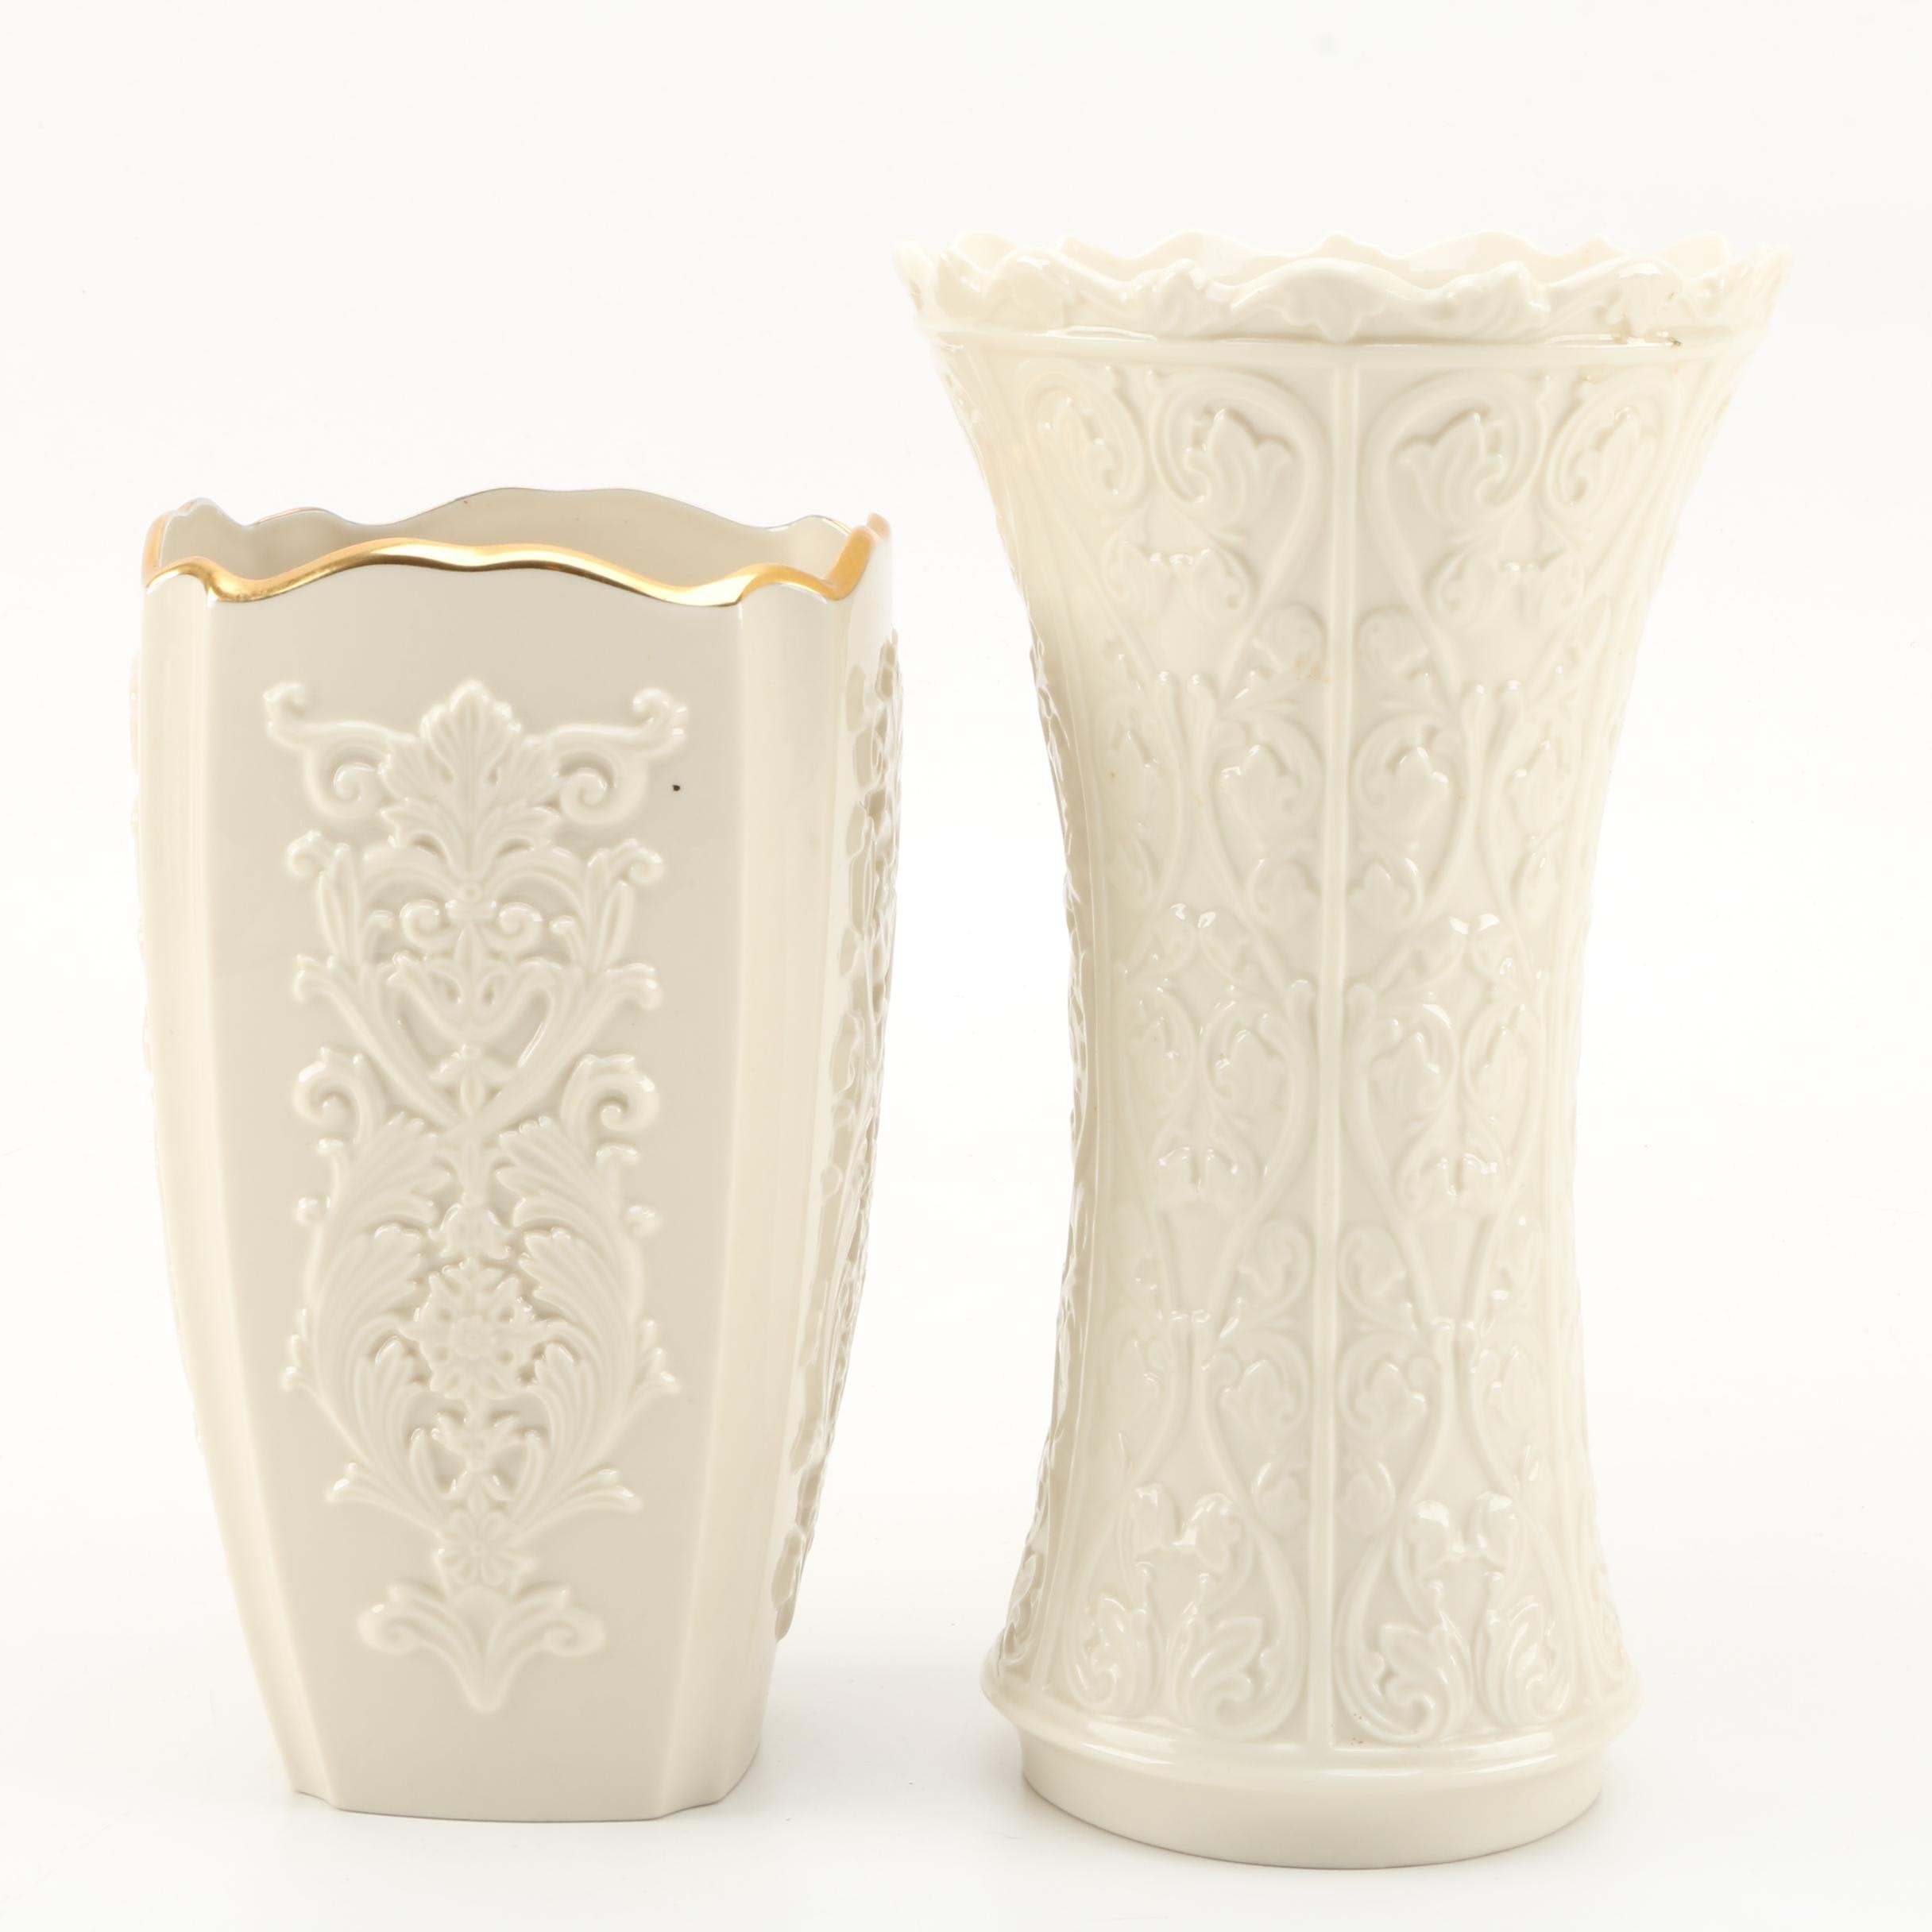 """Lenox Embossed Porcelain Vases Featuring """"Wentworth"""""""